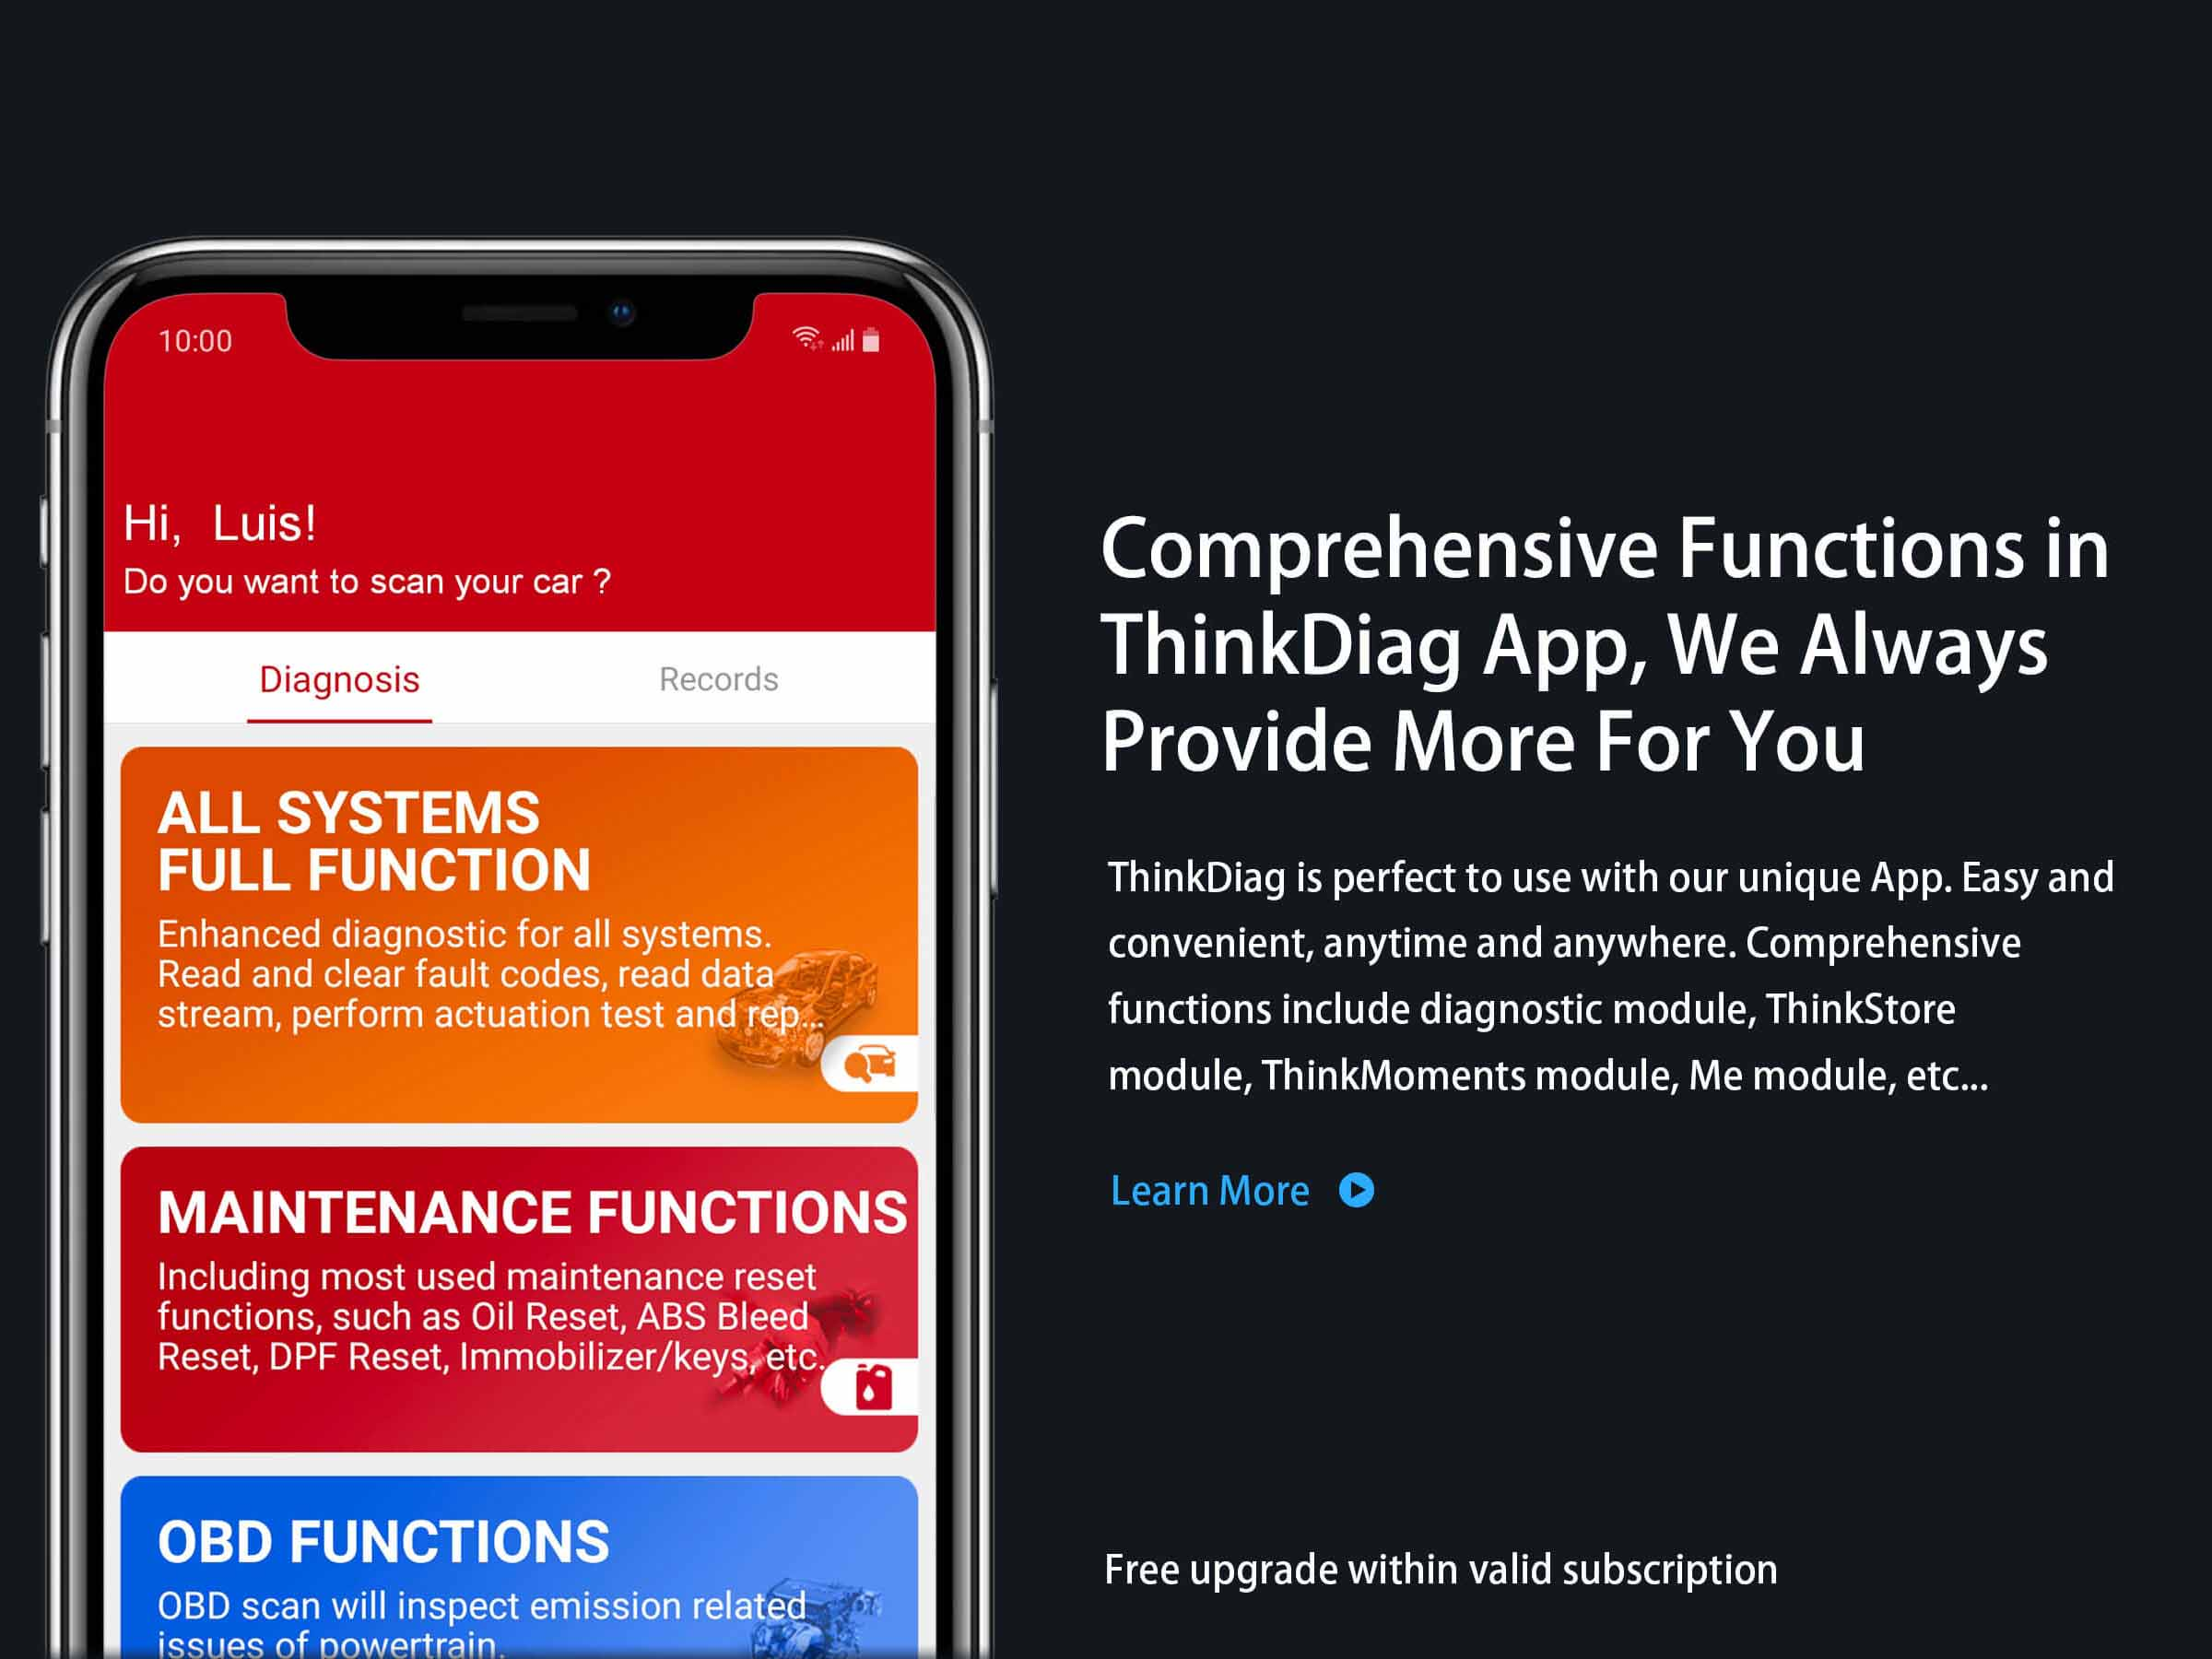 THINKDIAG has Comprehensive Advanced functions in the thinkdiag app, We are always looking to provide more for you.ThinkDiag is perfect to use with our unique app.Easy and convenient, anythime and anywhere.Comprehensive functions include diagnostic module,Thinkstore module,Thinkmoments module,Me module, etc ....